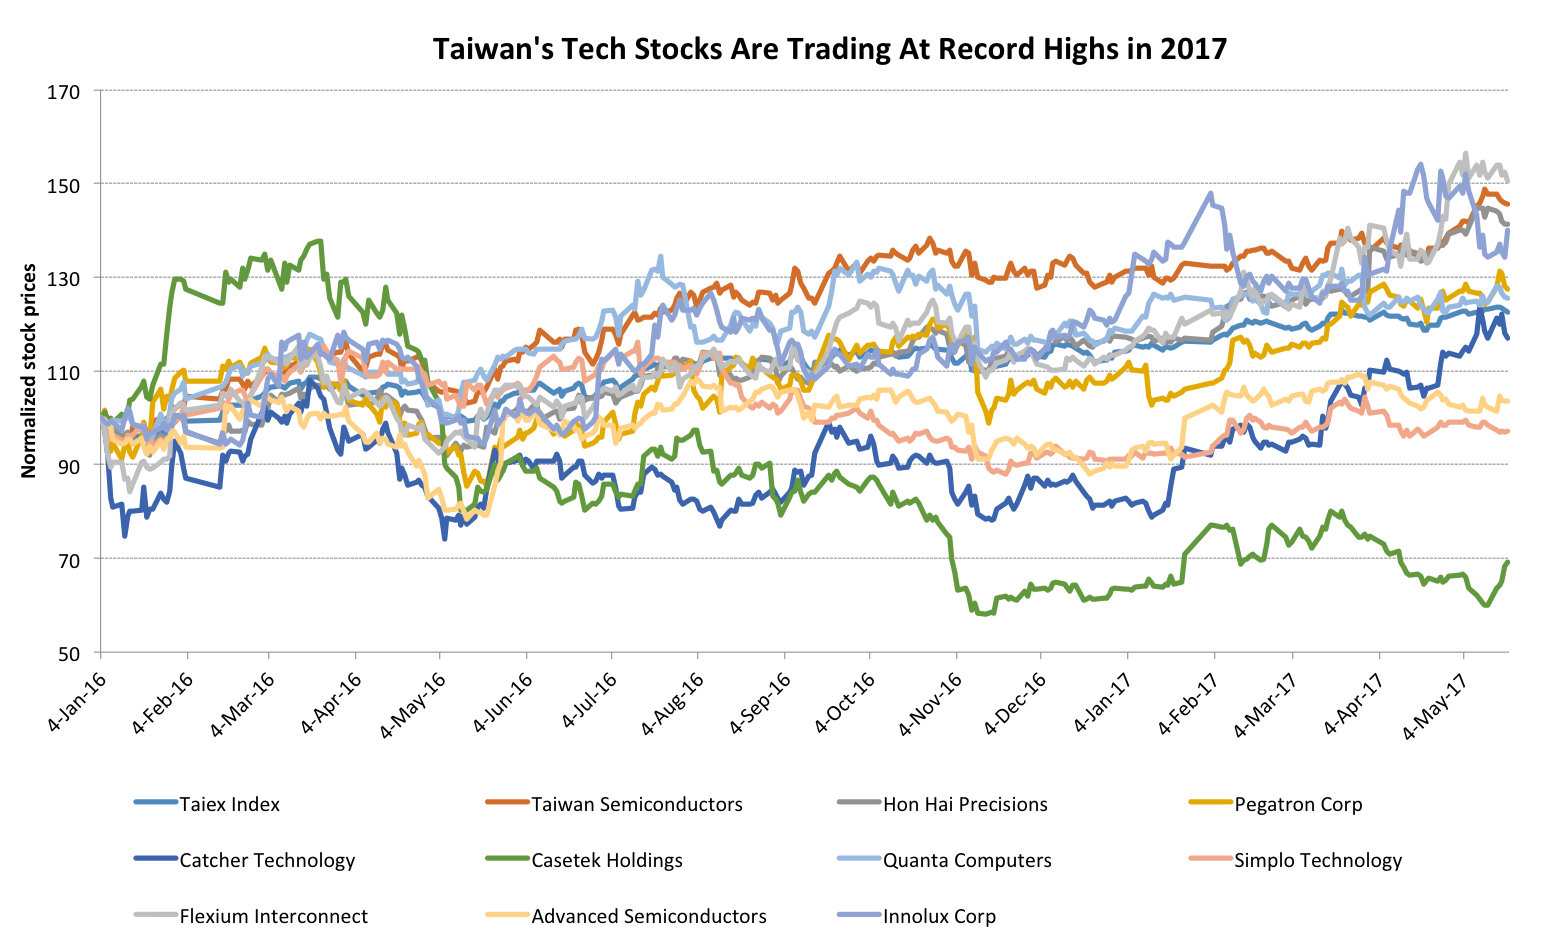 Stock Prices of Apple's Largest Suppliers in Taiwan Are